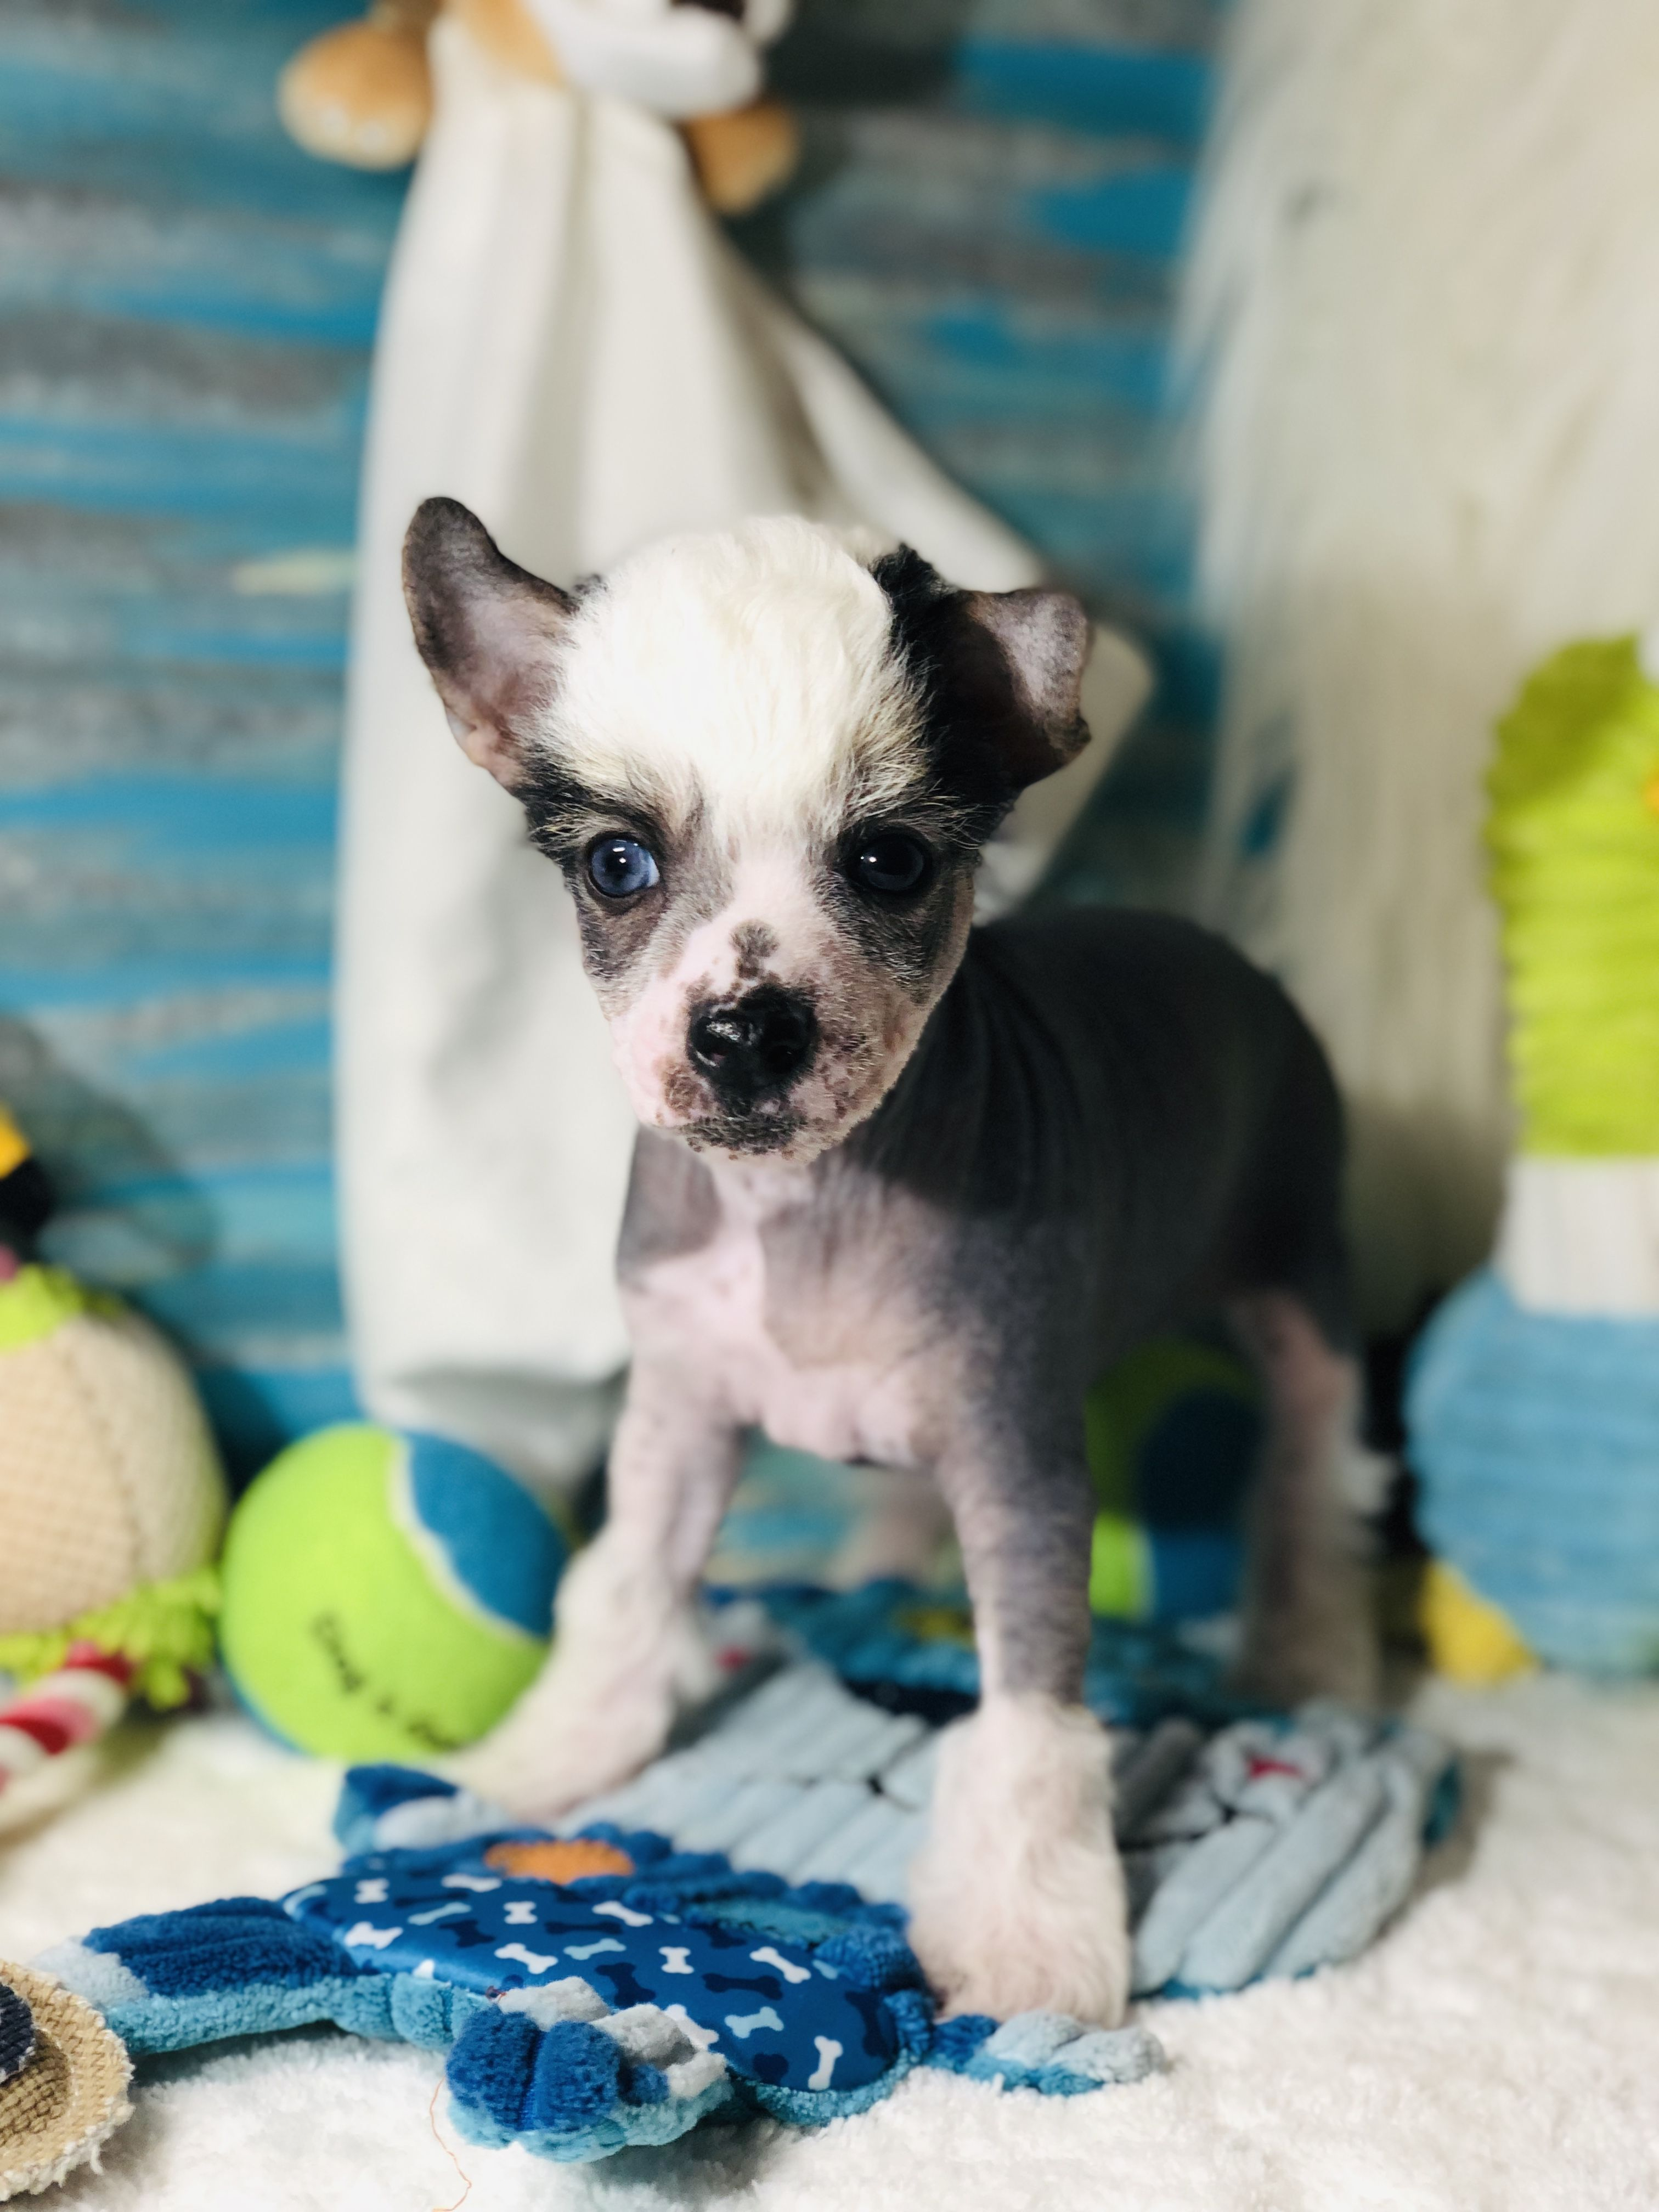 Chinese crested, French